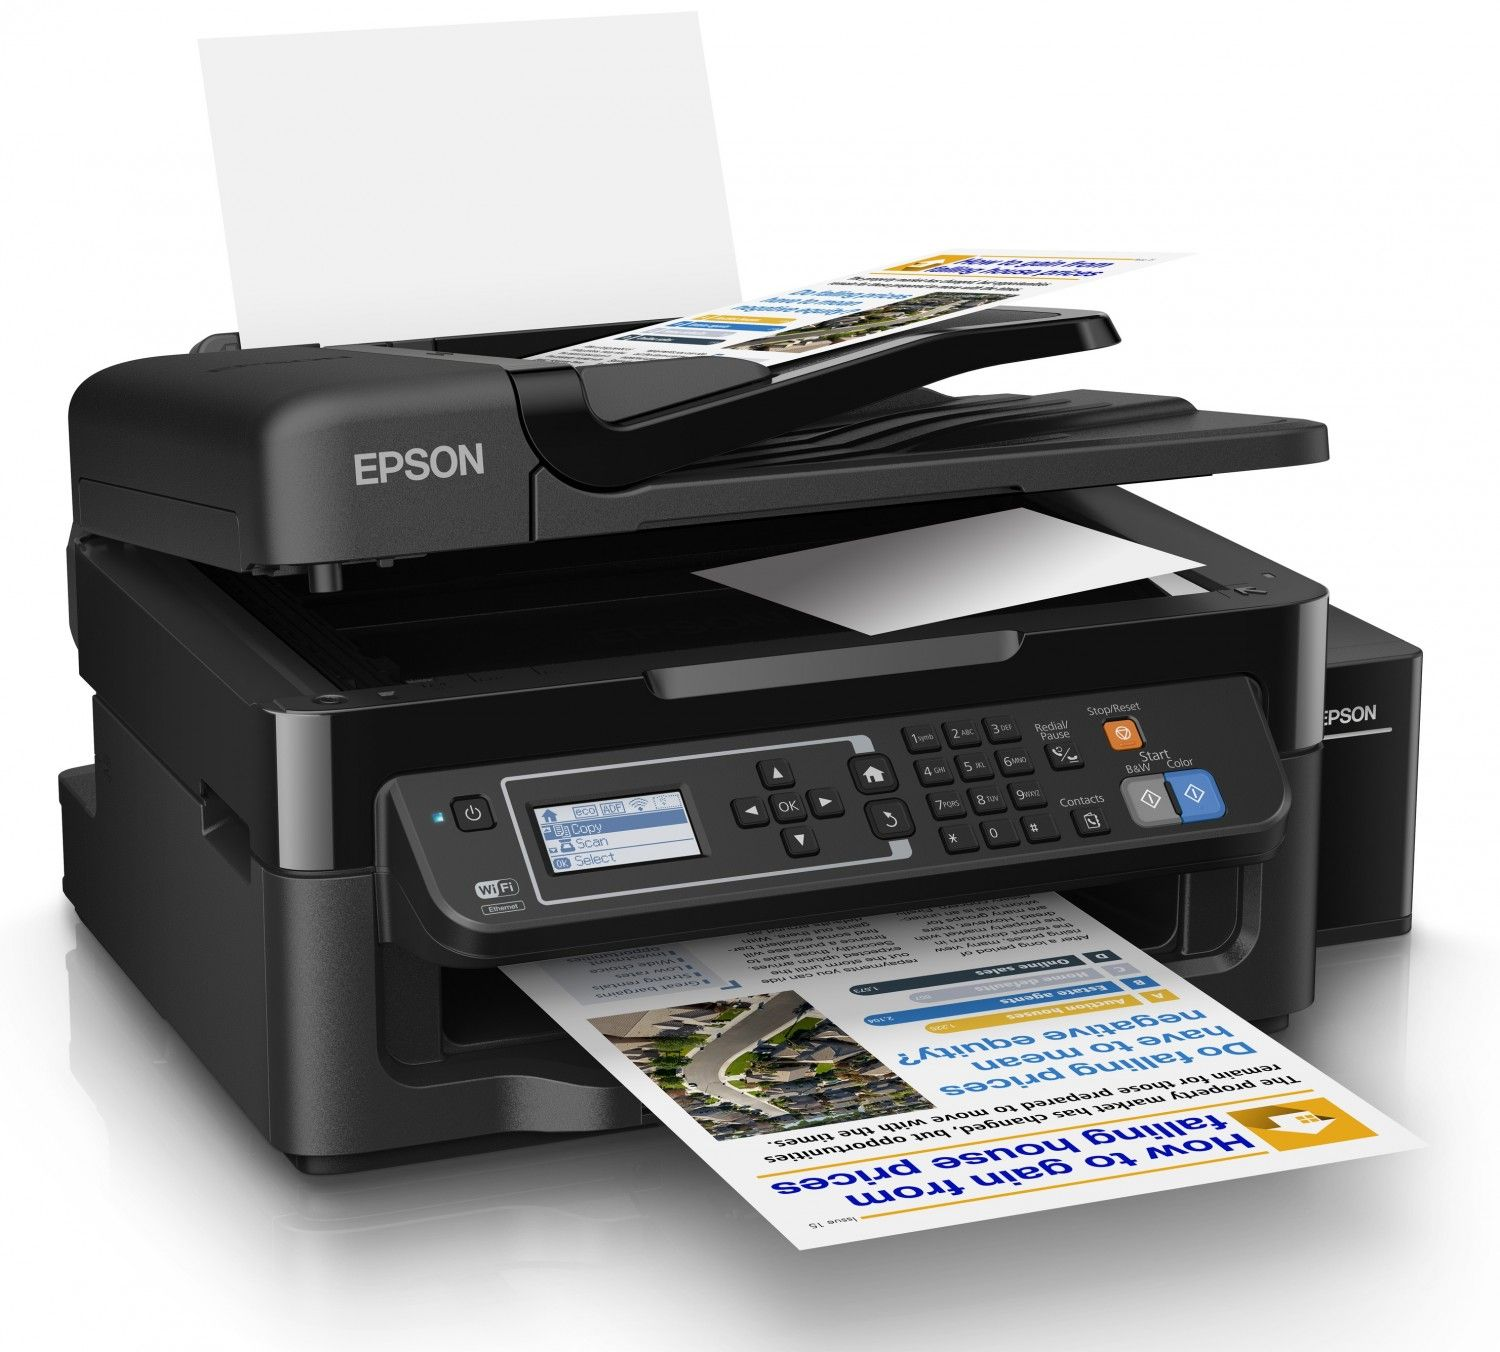 86e094edc L805 Epson Epson Color Printer Price In Nepal | Lalitpur | Printer ...